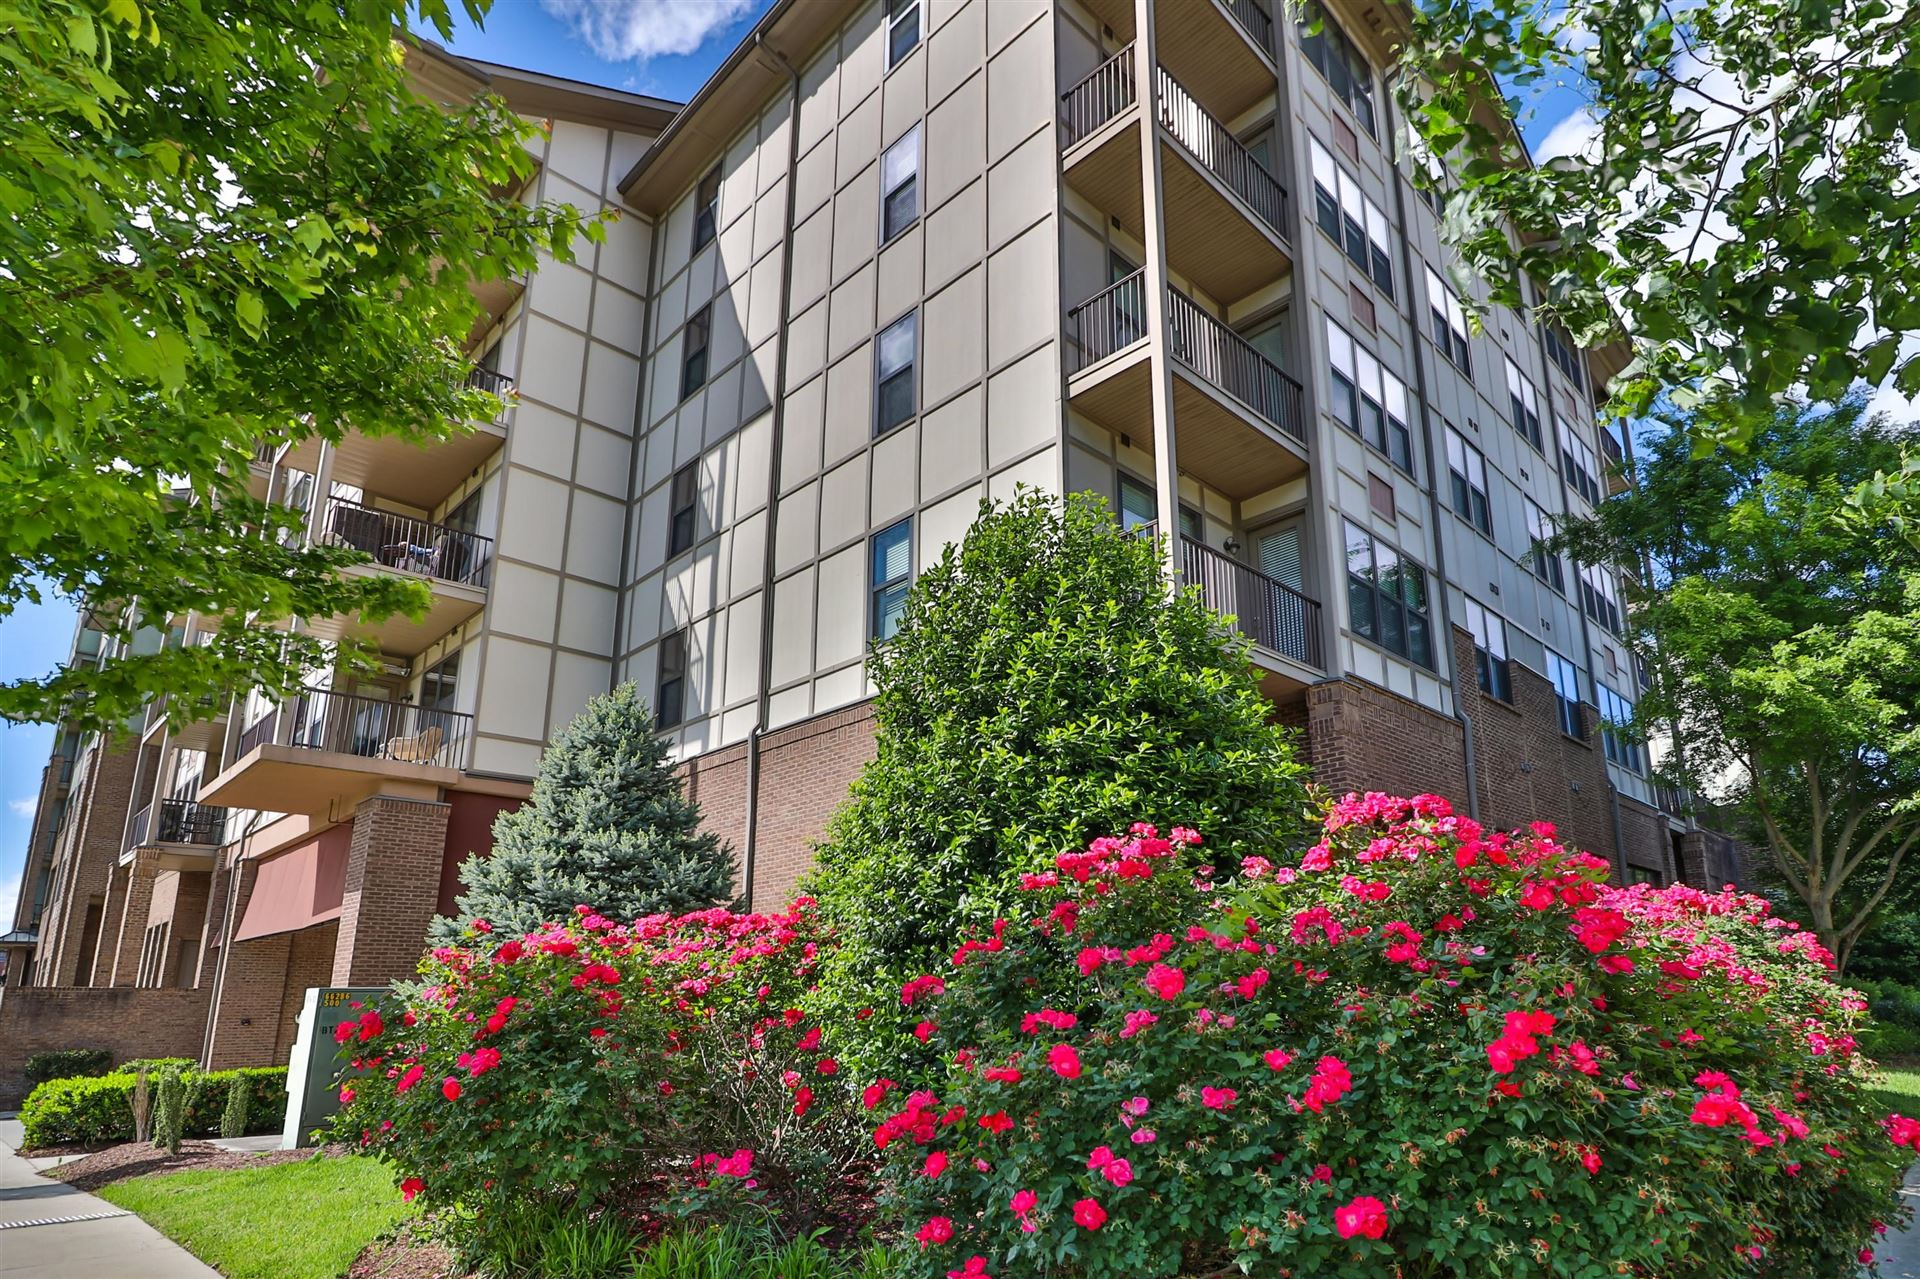 Photo for 445 W. Blount Avenue #302, Knoxville, TN 37920 (MLS # 1117858)